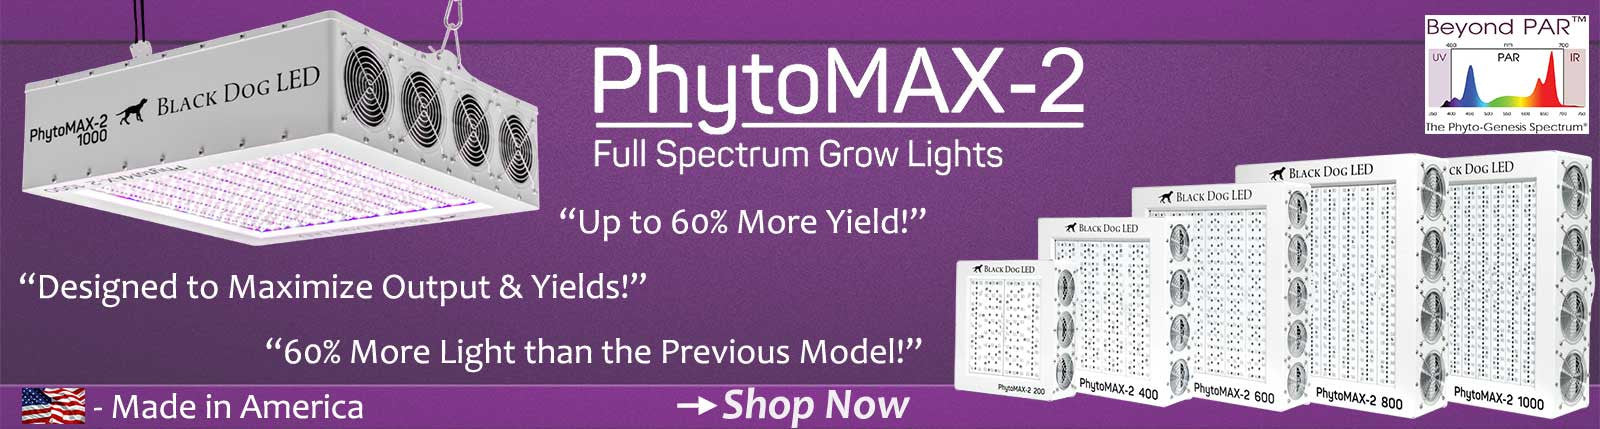 Introducing the New Black Dog LED PhytoMAX-2 LED Grow Light Series